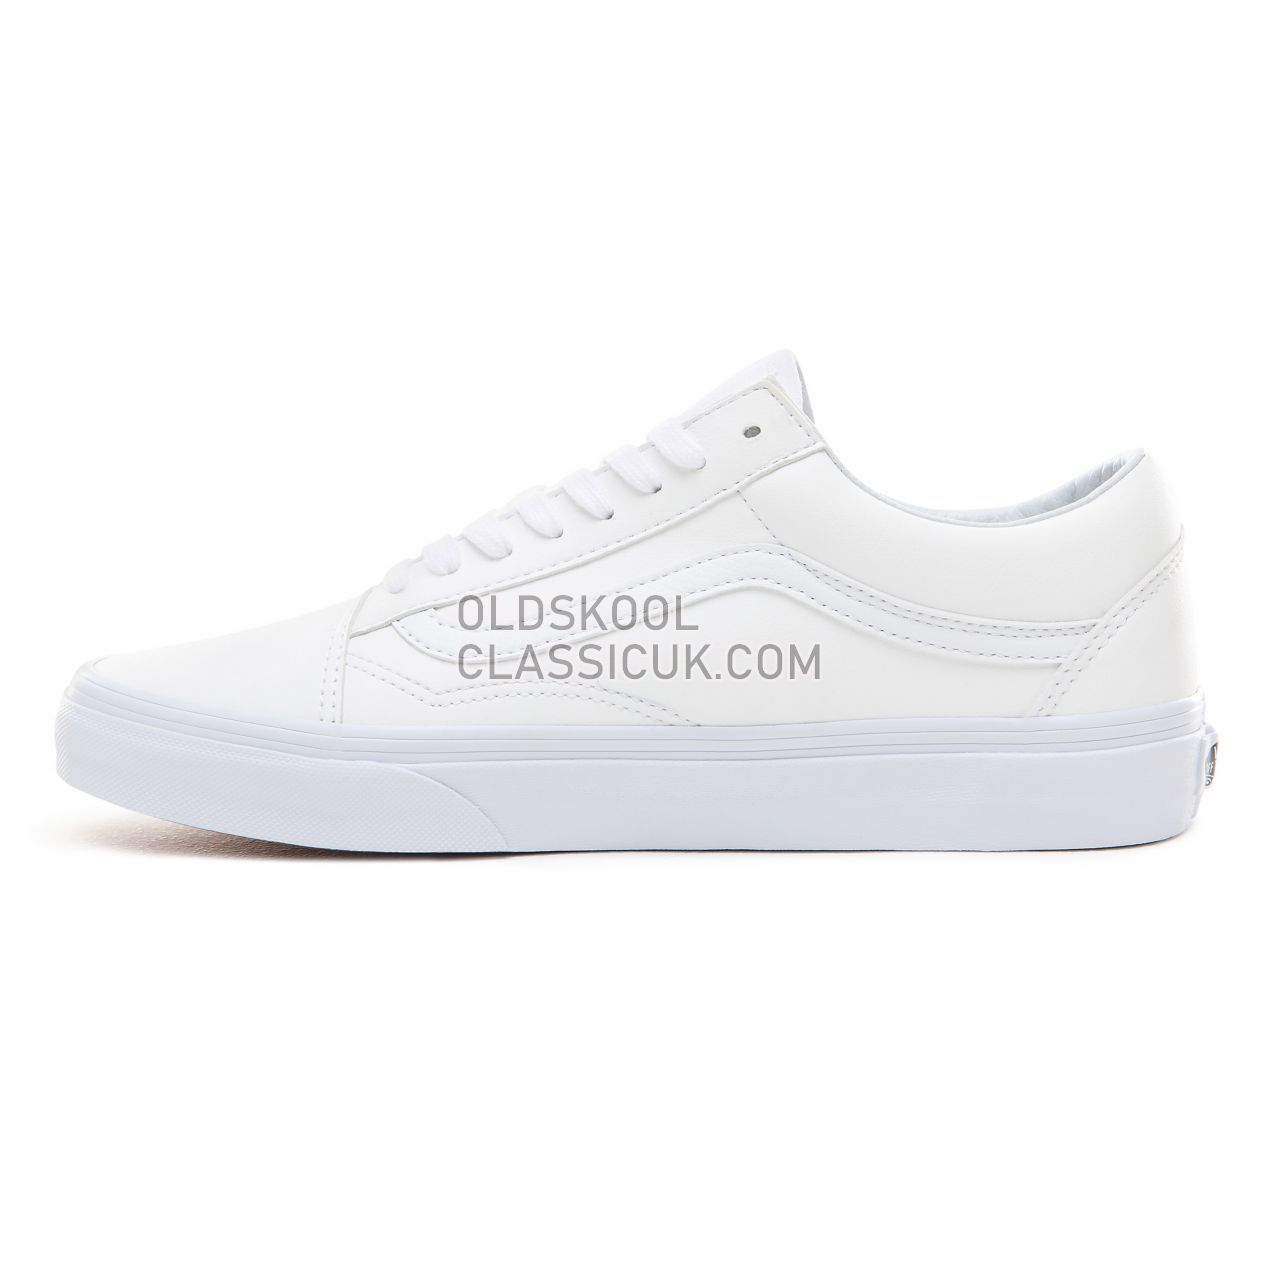 0843035a06 ... Vans Classic Tumble Old Skool Sneakers Mens Womens Unisex (Classic  Tumble) True White VN0A38G1ODJ ...